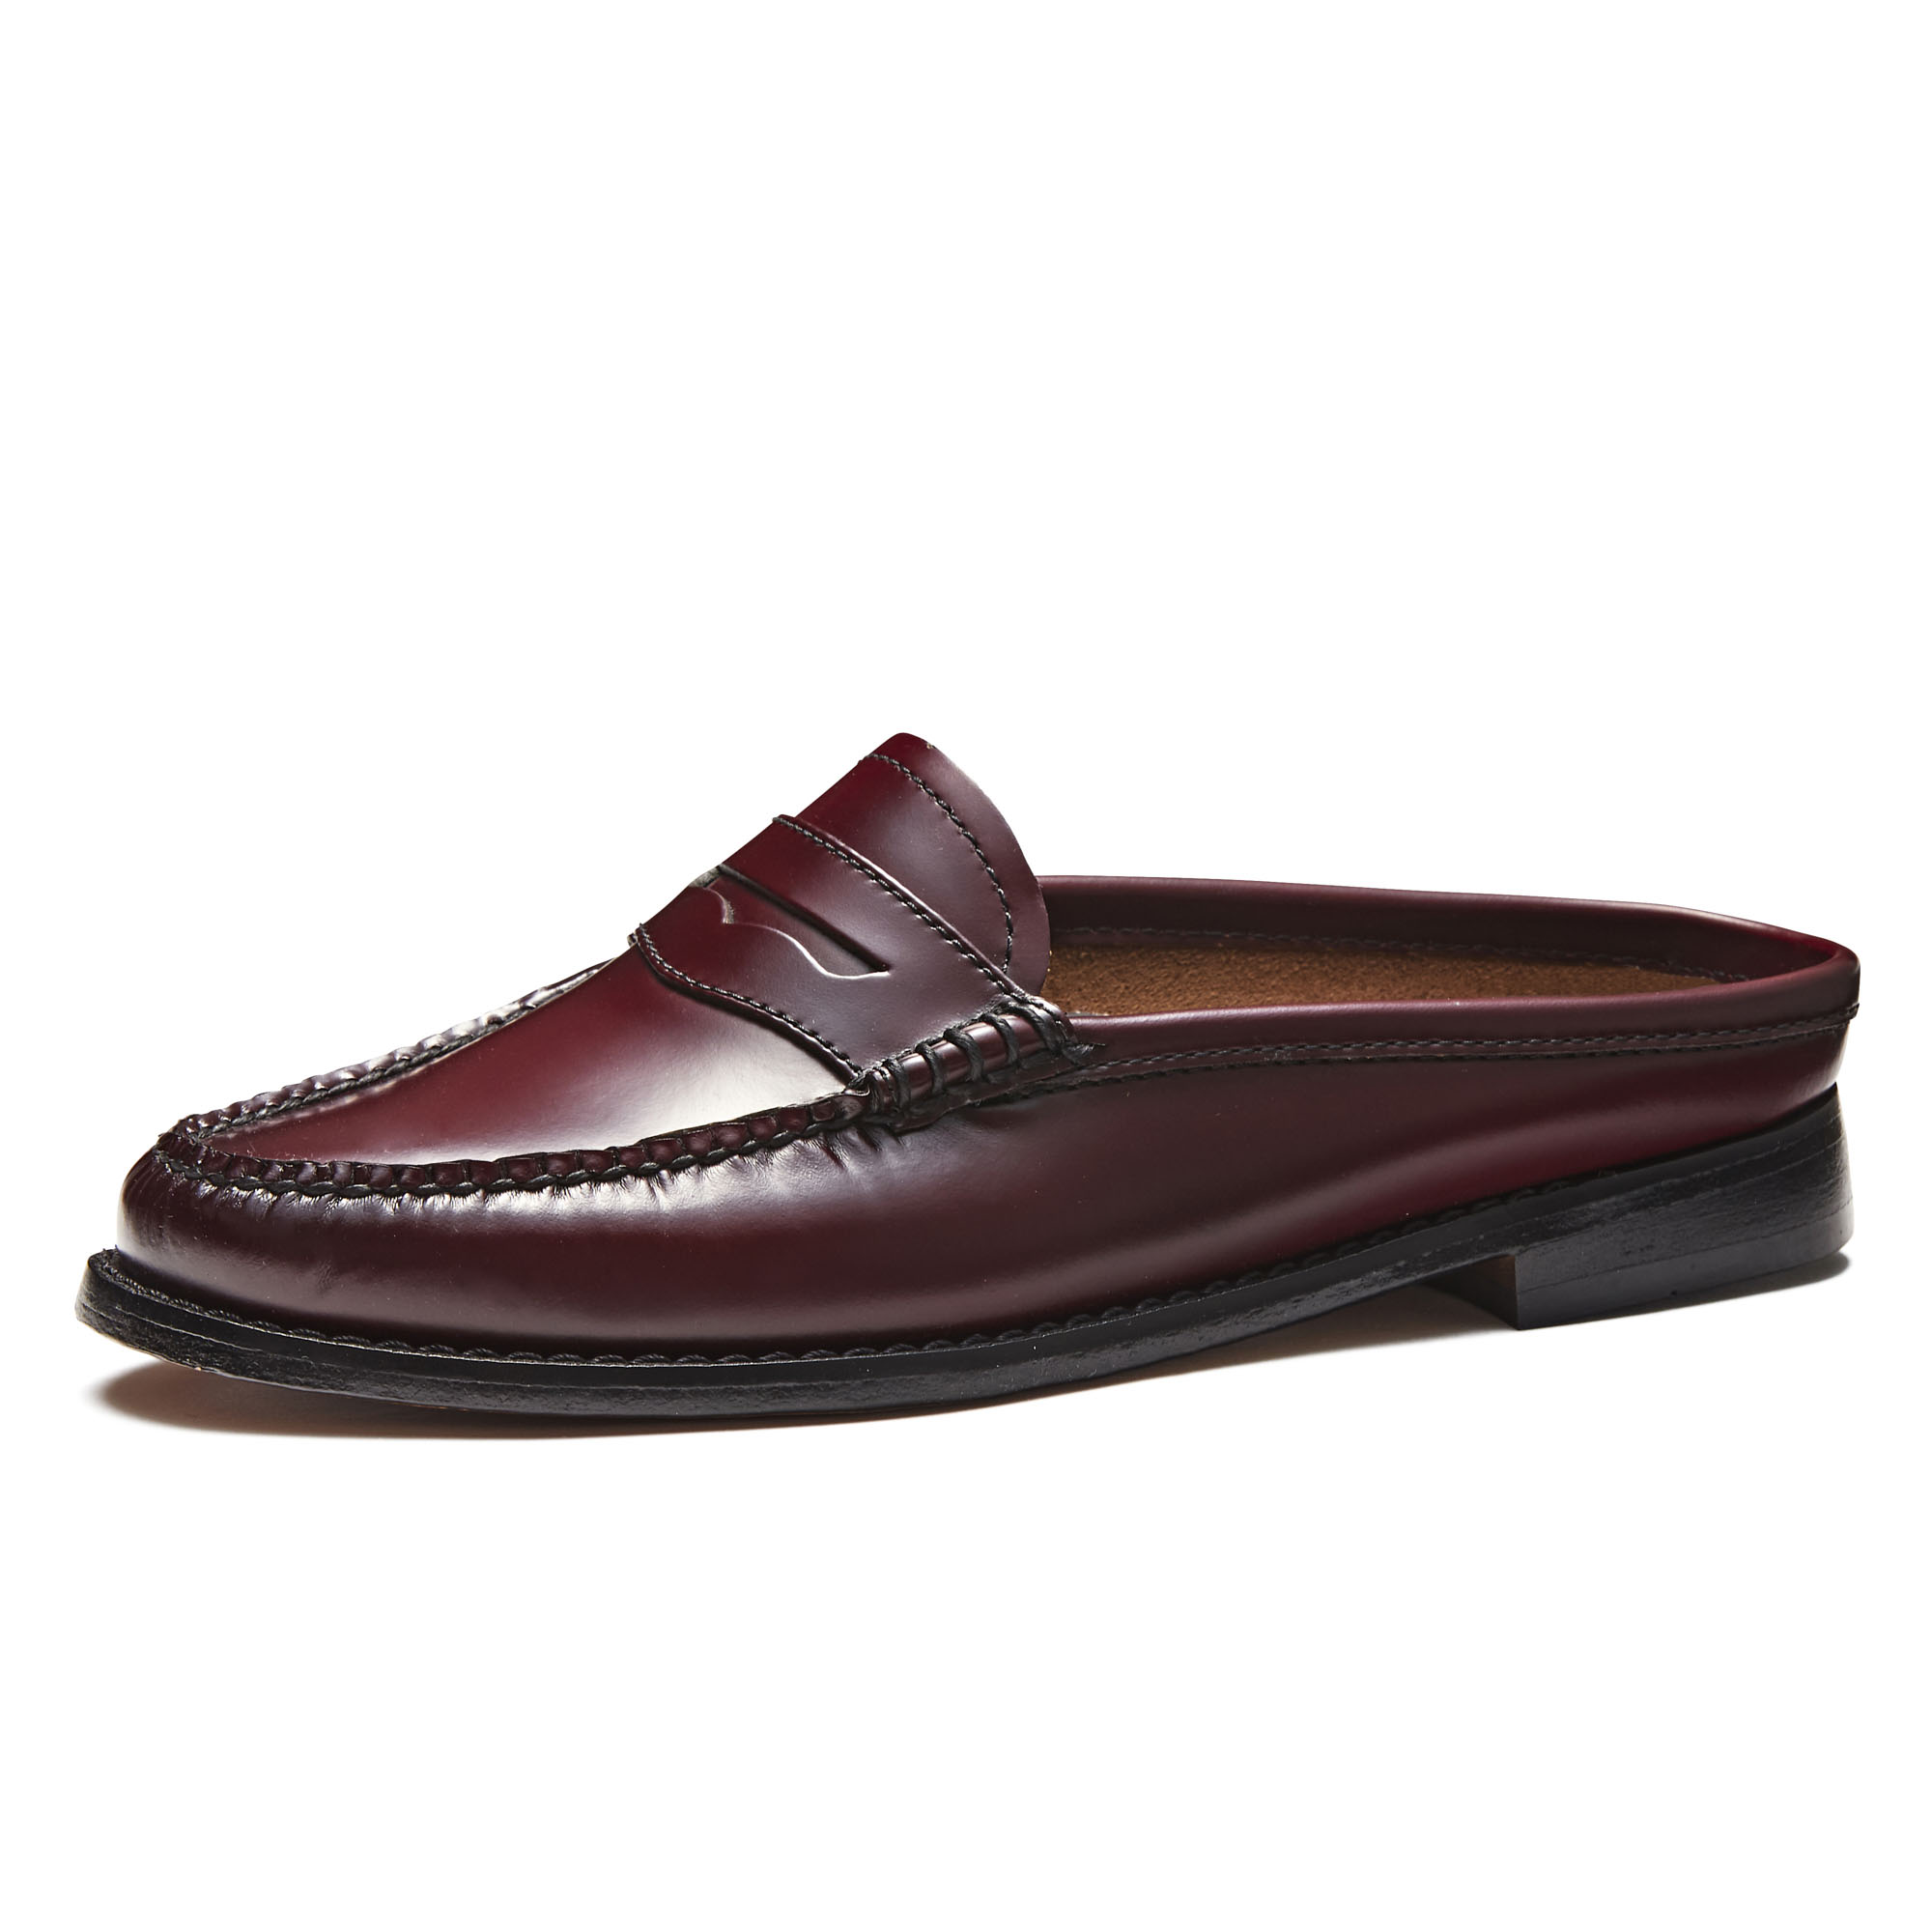 41000 / WINE (LEATHER SOLE)